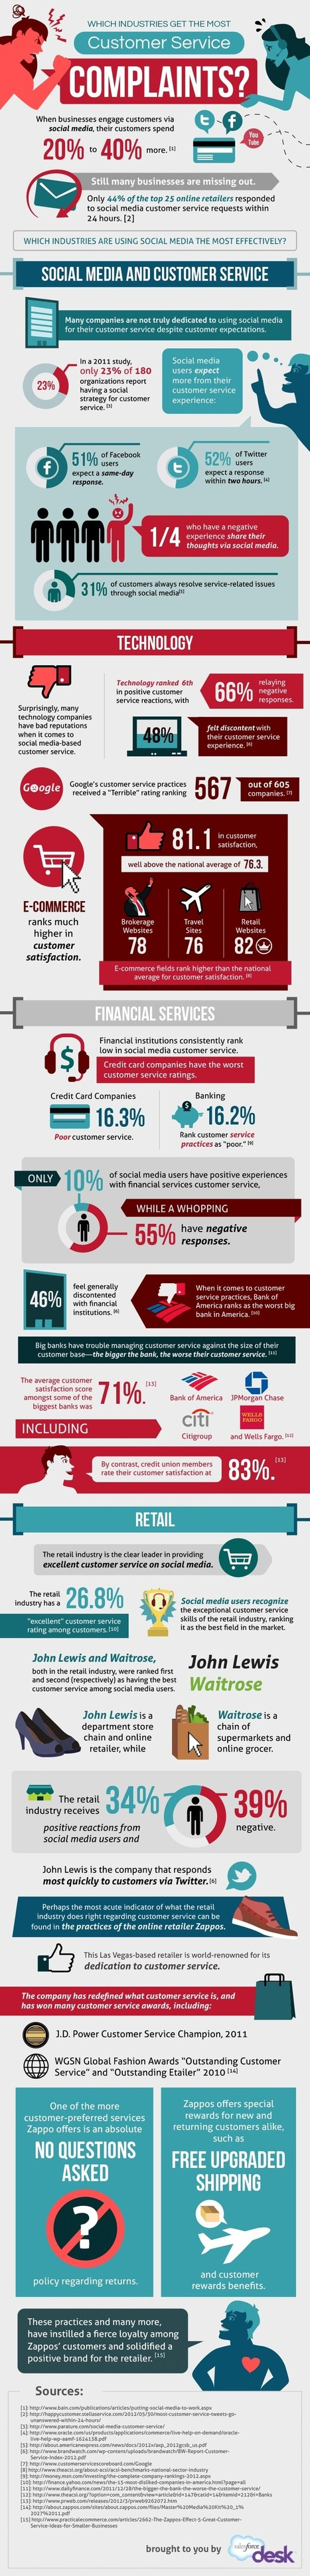 What Industries Get the Most Customer Service Complaints? | Customer service | Scoop.it